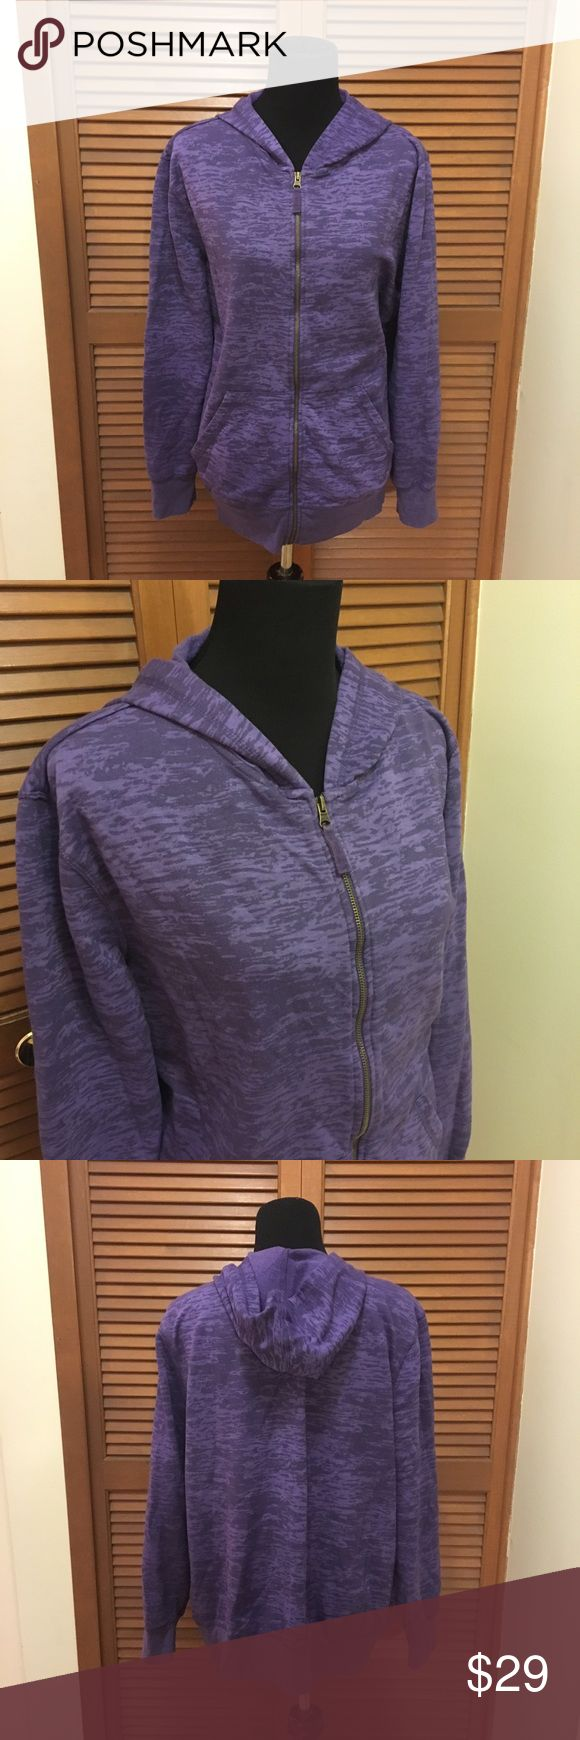 Pure Energy plus size purple hoodie 3X Pure energy purple zip up hoodie sweatshirt. 52% polyester 48% cotton. Bundle two or more items from my closet and save! Pure Energy Tops Sweatshirts & Hoodies